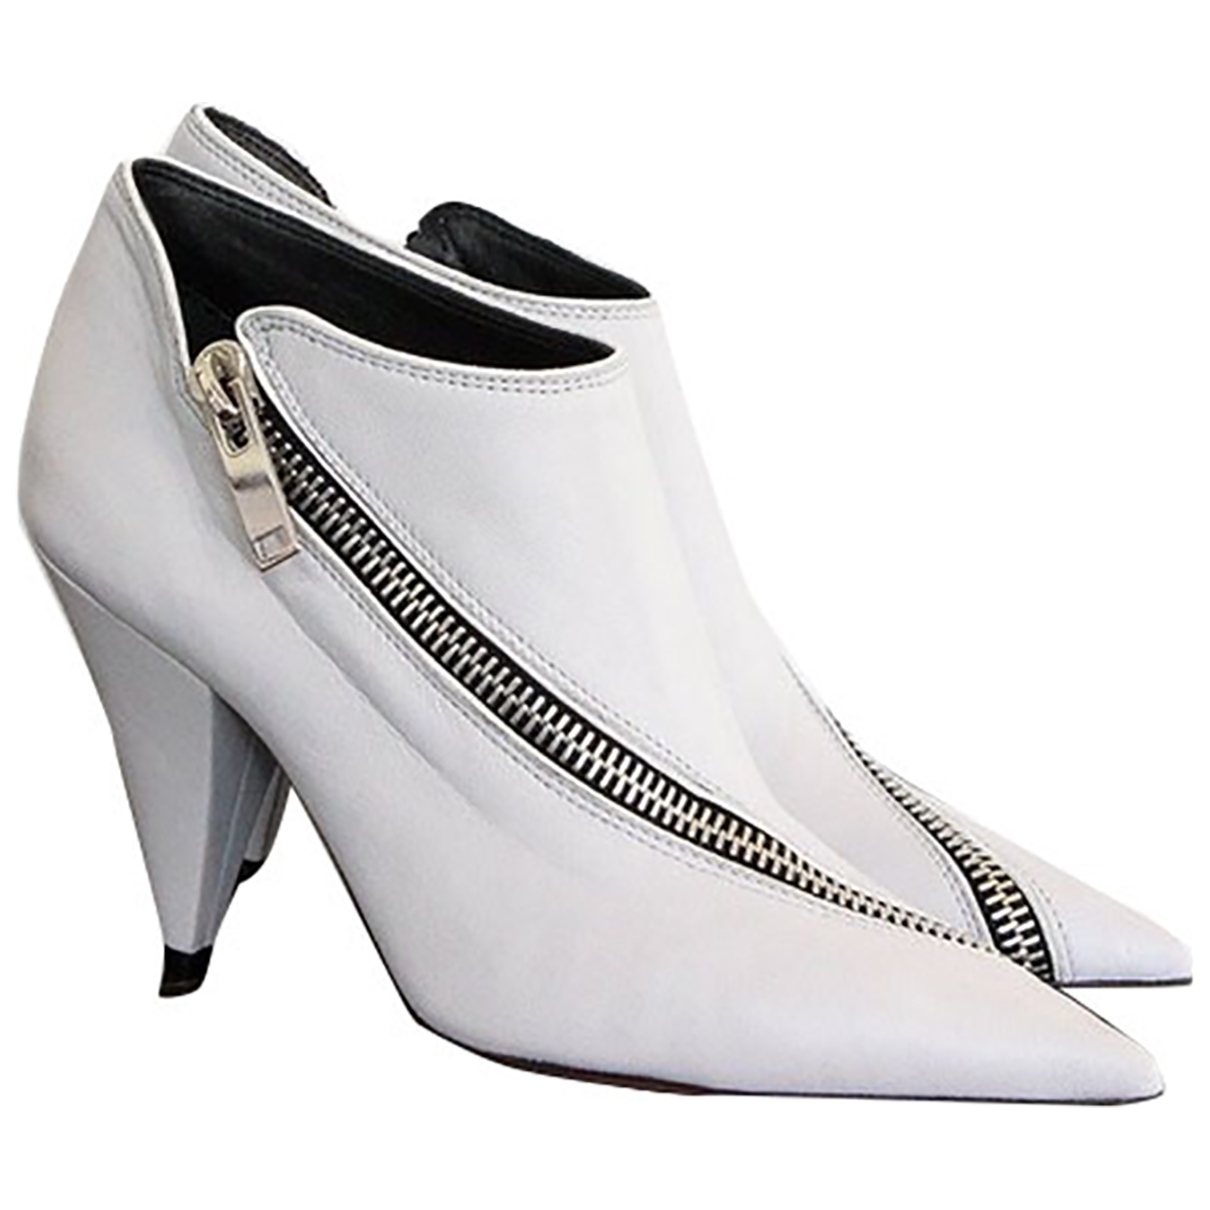 Celine Triangle Heel White Leather Ankle boots for Women 38 EU